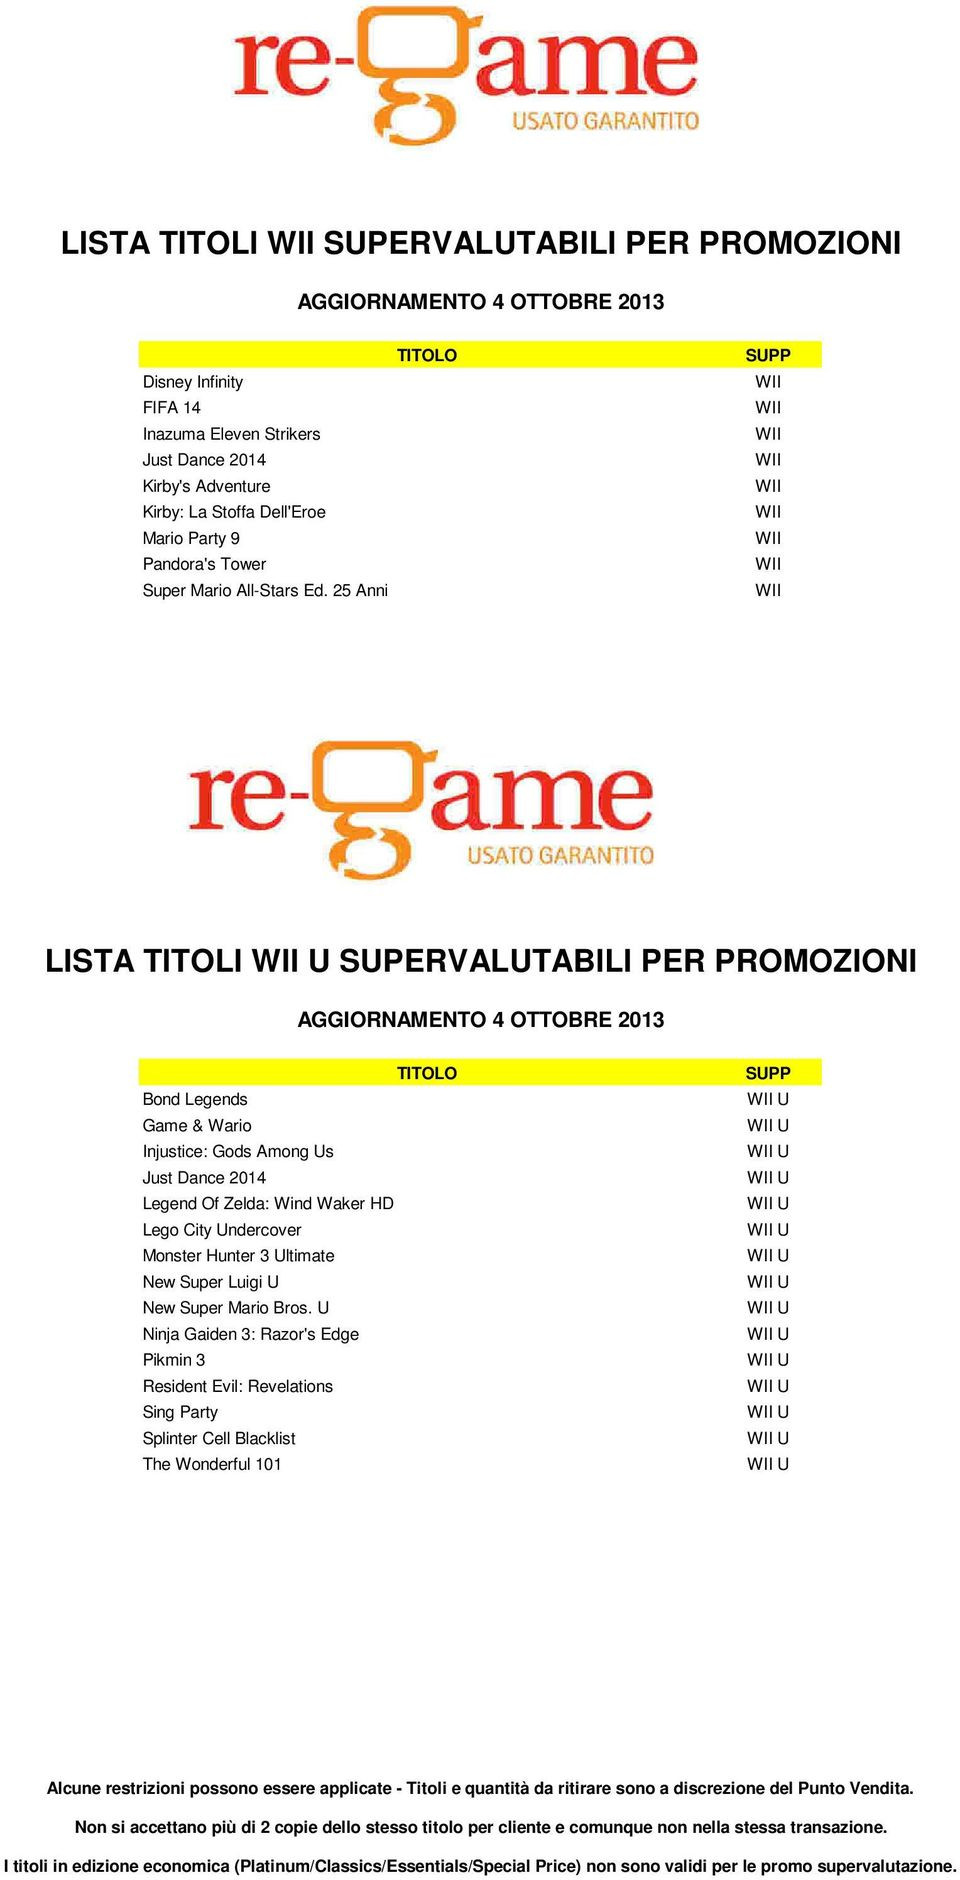 25 Anni LISTA TITOLI SUPERVALUTABILI PER PROMOZIONI Bond Legends Game & Wario Injustice: Gods Among Us Just Dance 2014 Legend Of Zelda: